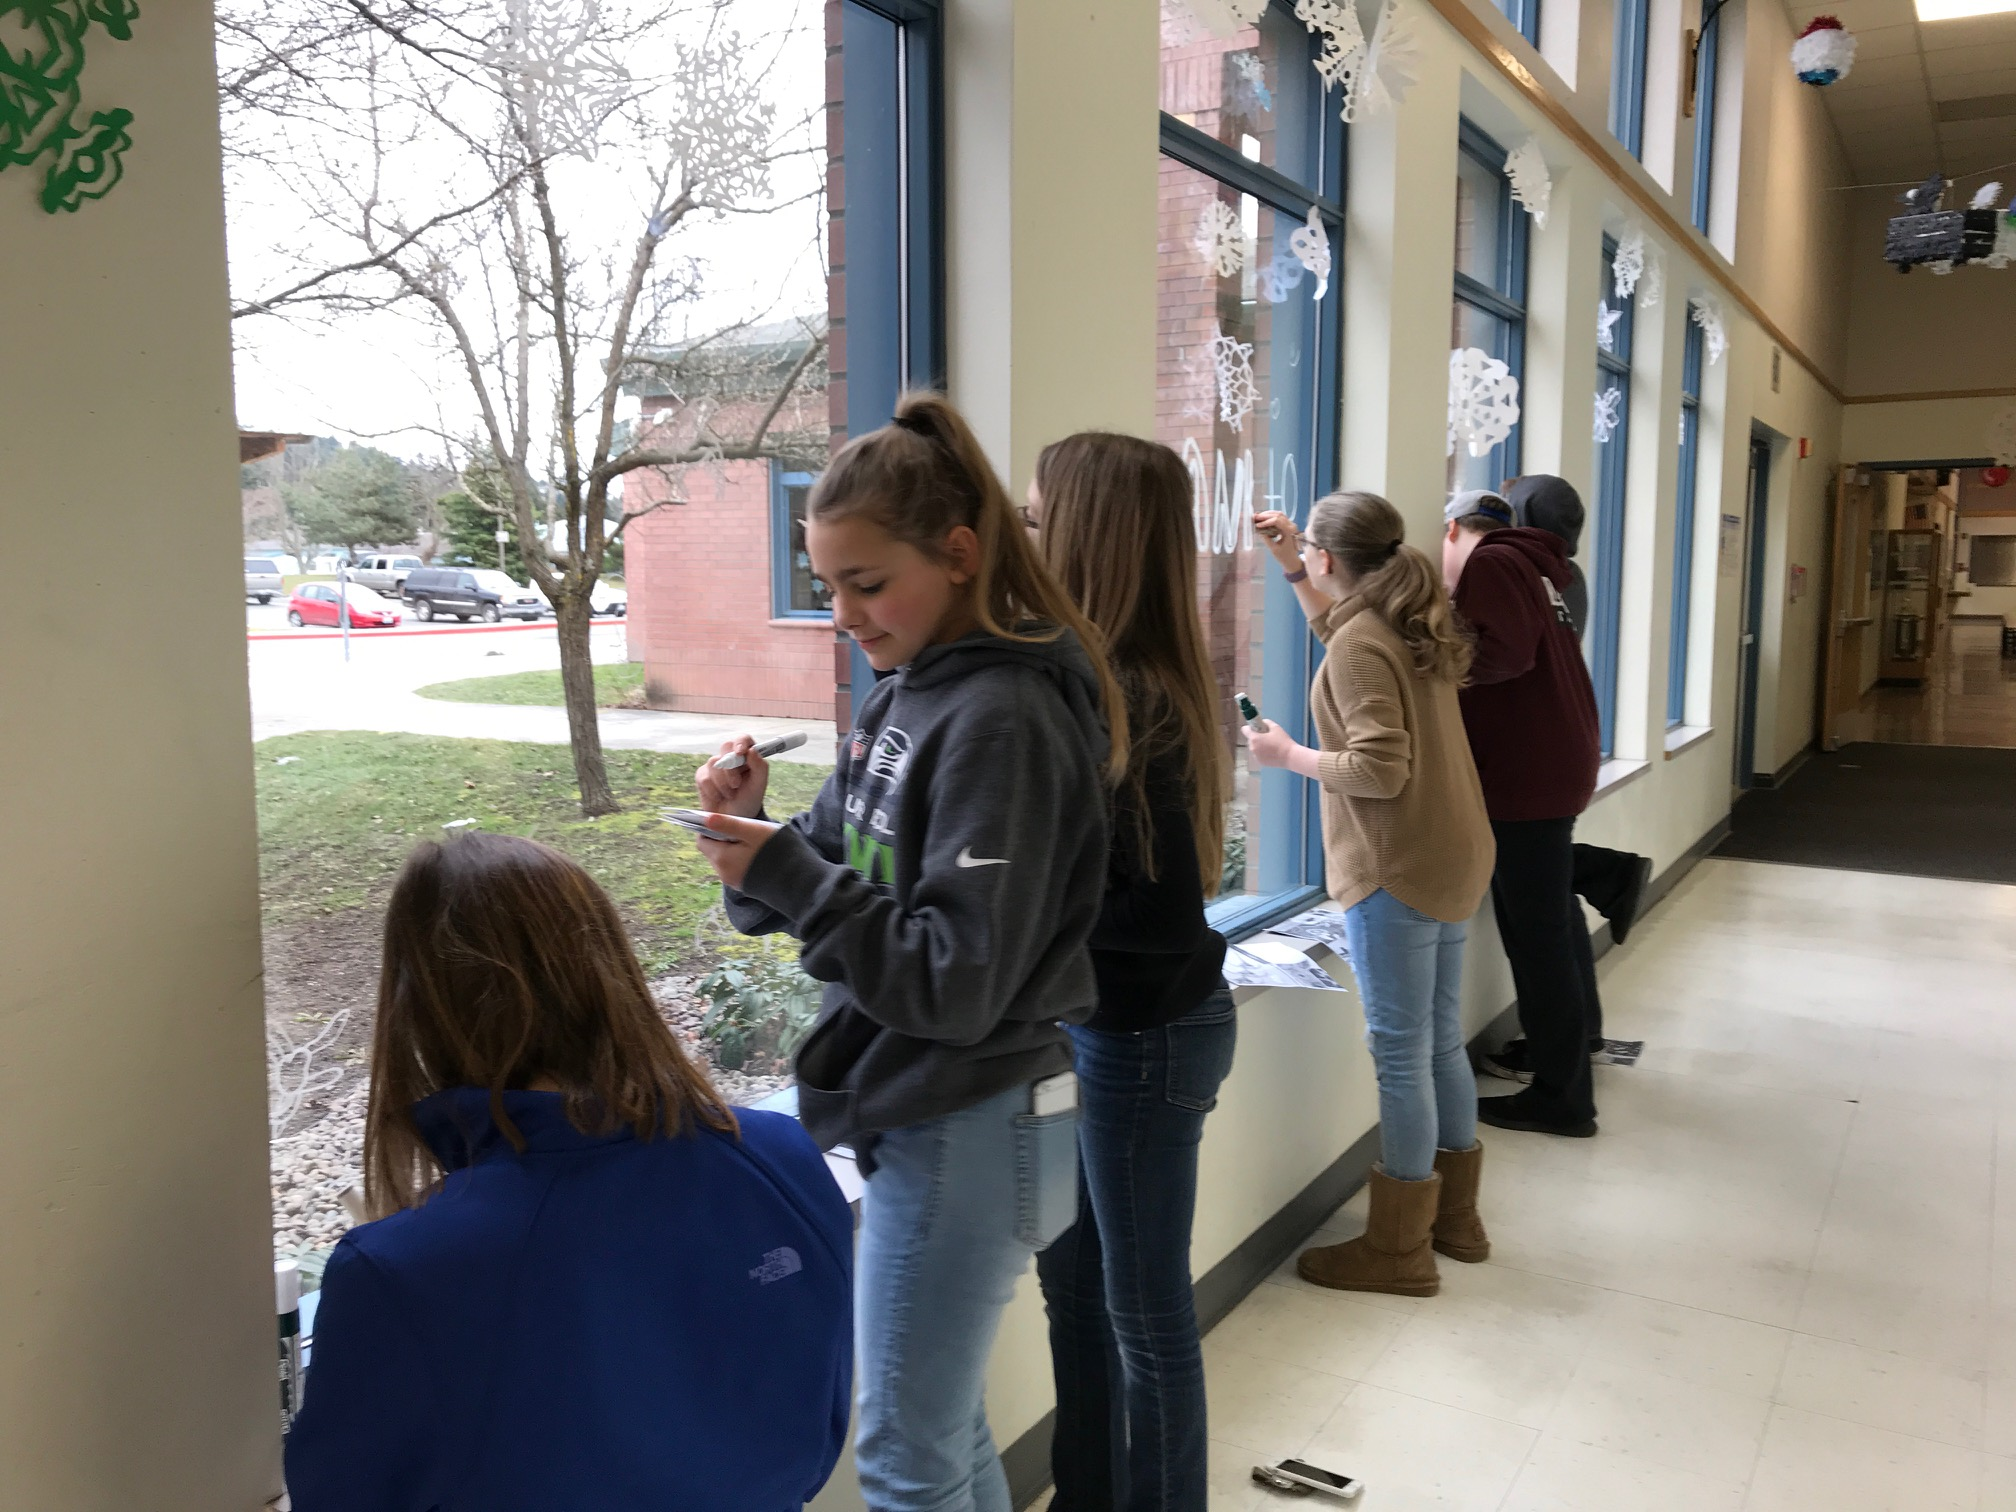 6th graders drawing plankton graffiti on school windows